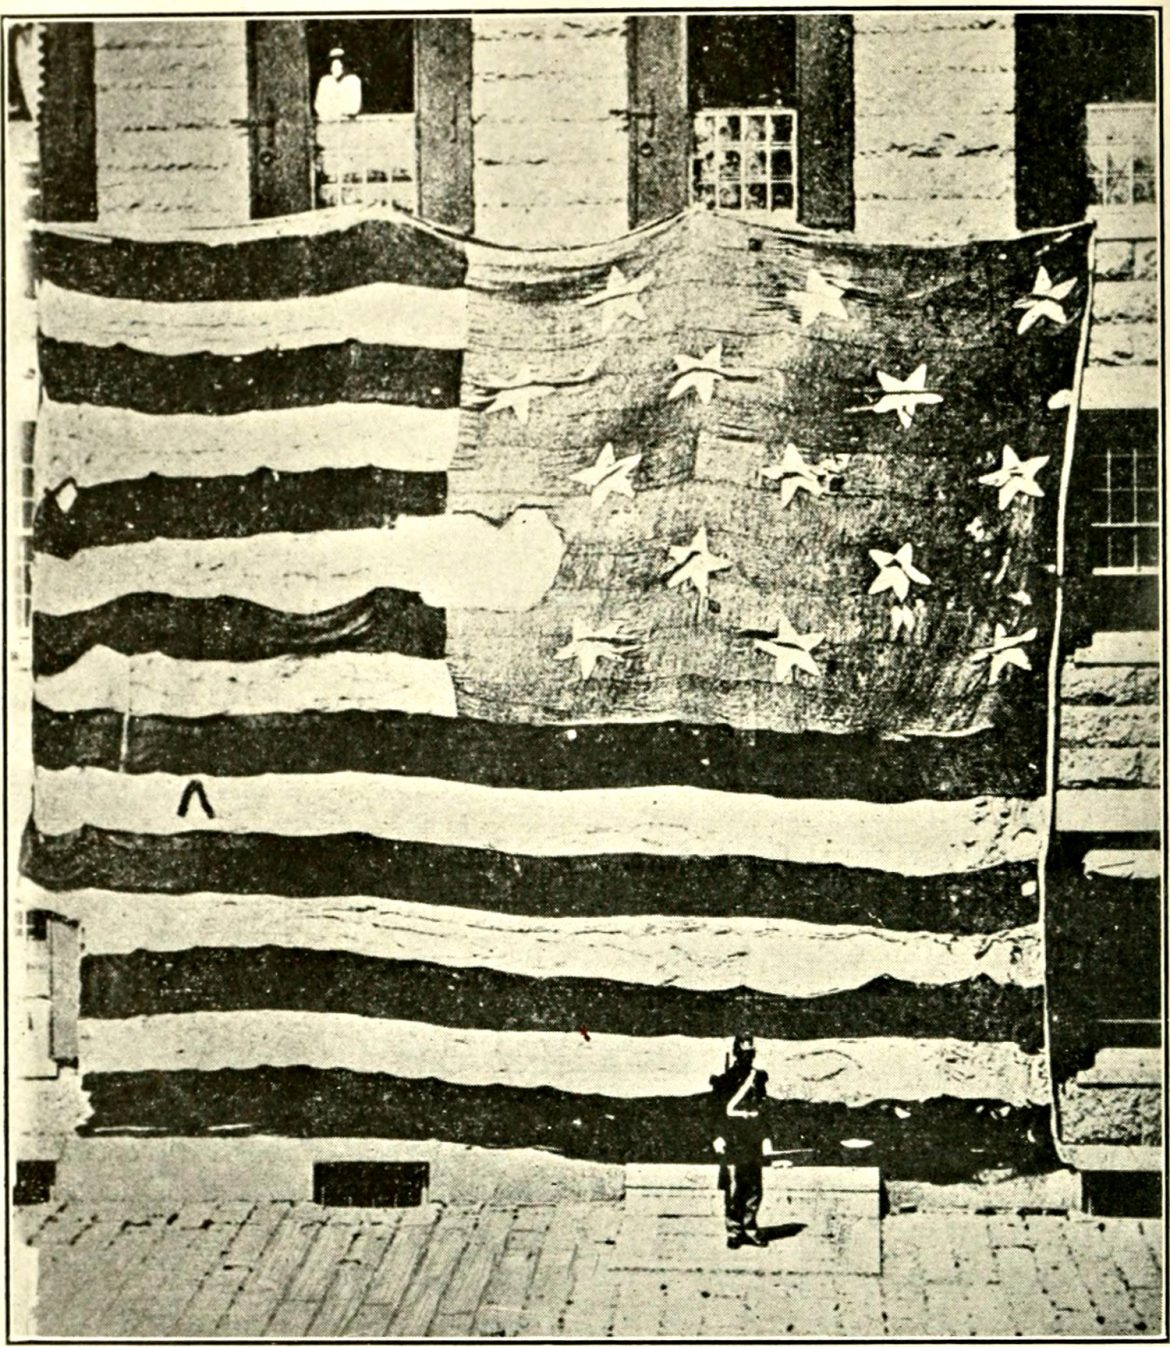 The American flag that flew over Fort McHenry during a battle of the War of 1812 and inspired the national anthem.